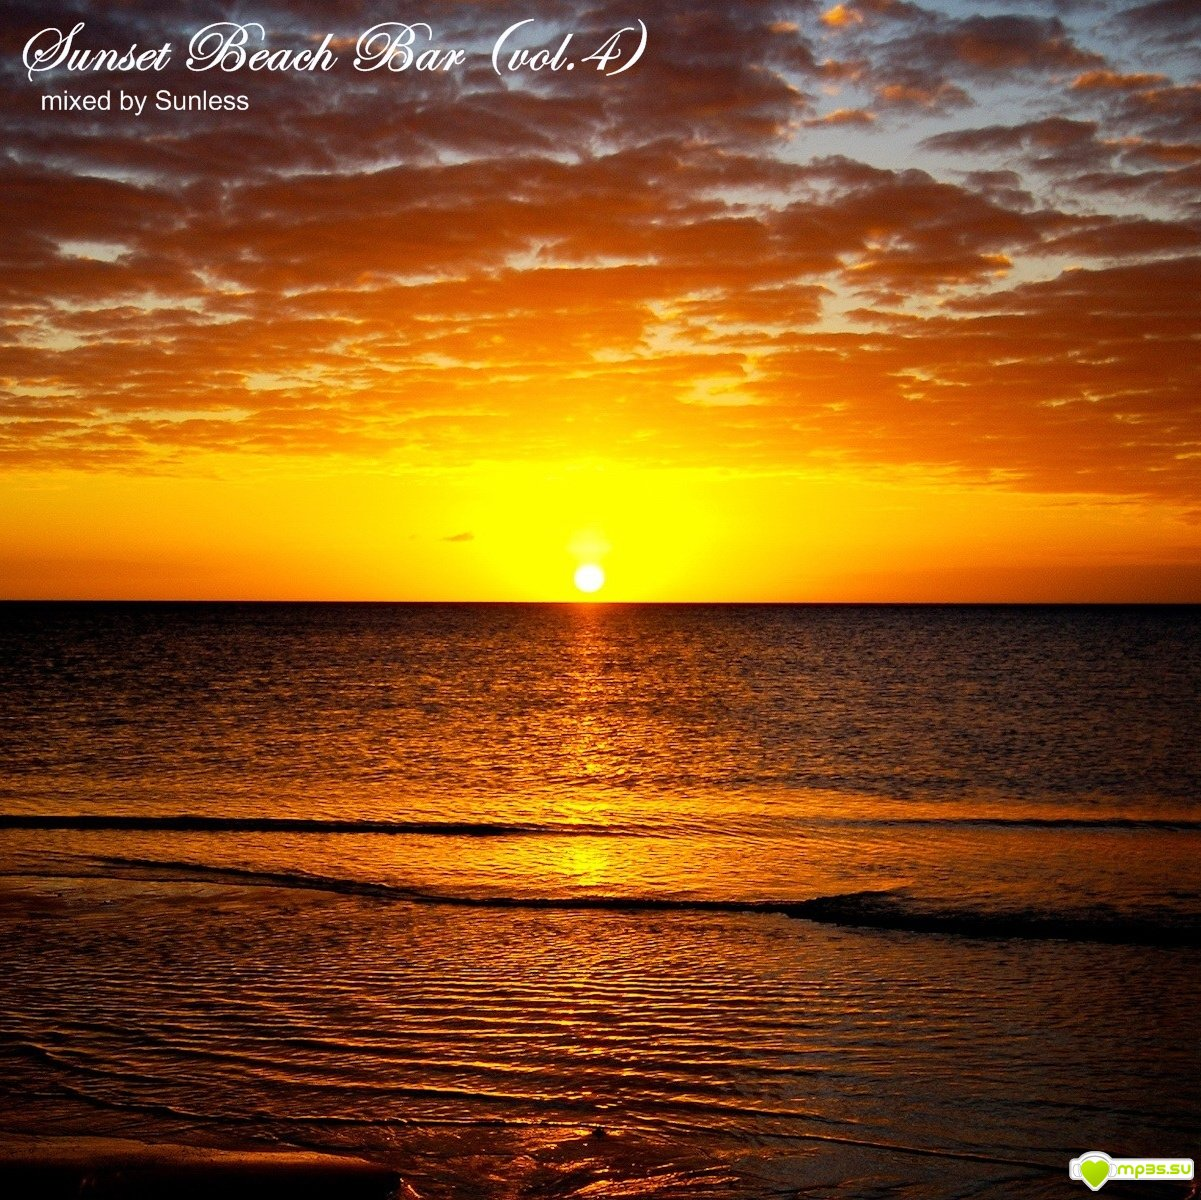 pinterest labels flowers wallpaper sunset beach sunset beach wallpaper 1201x1200